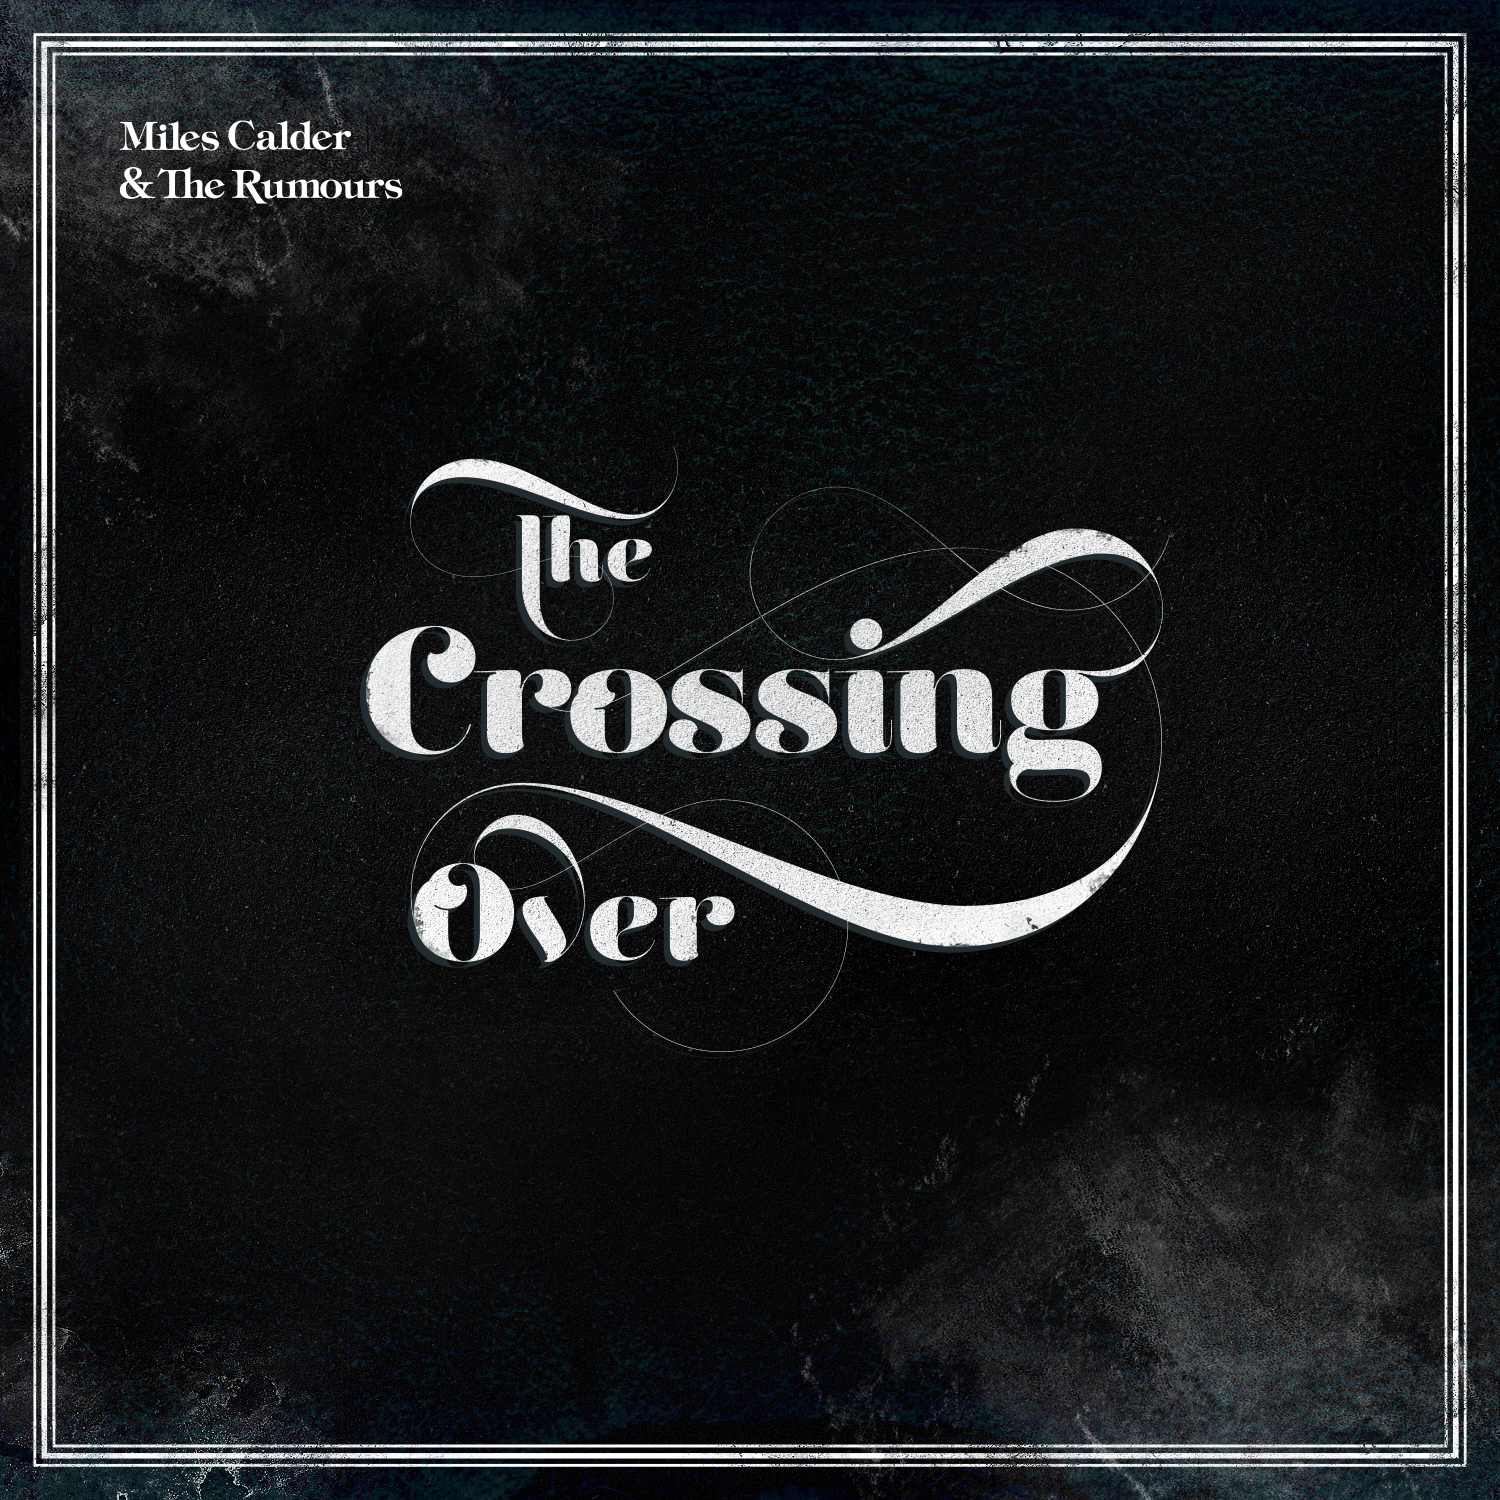 The Crossing Over